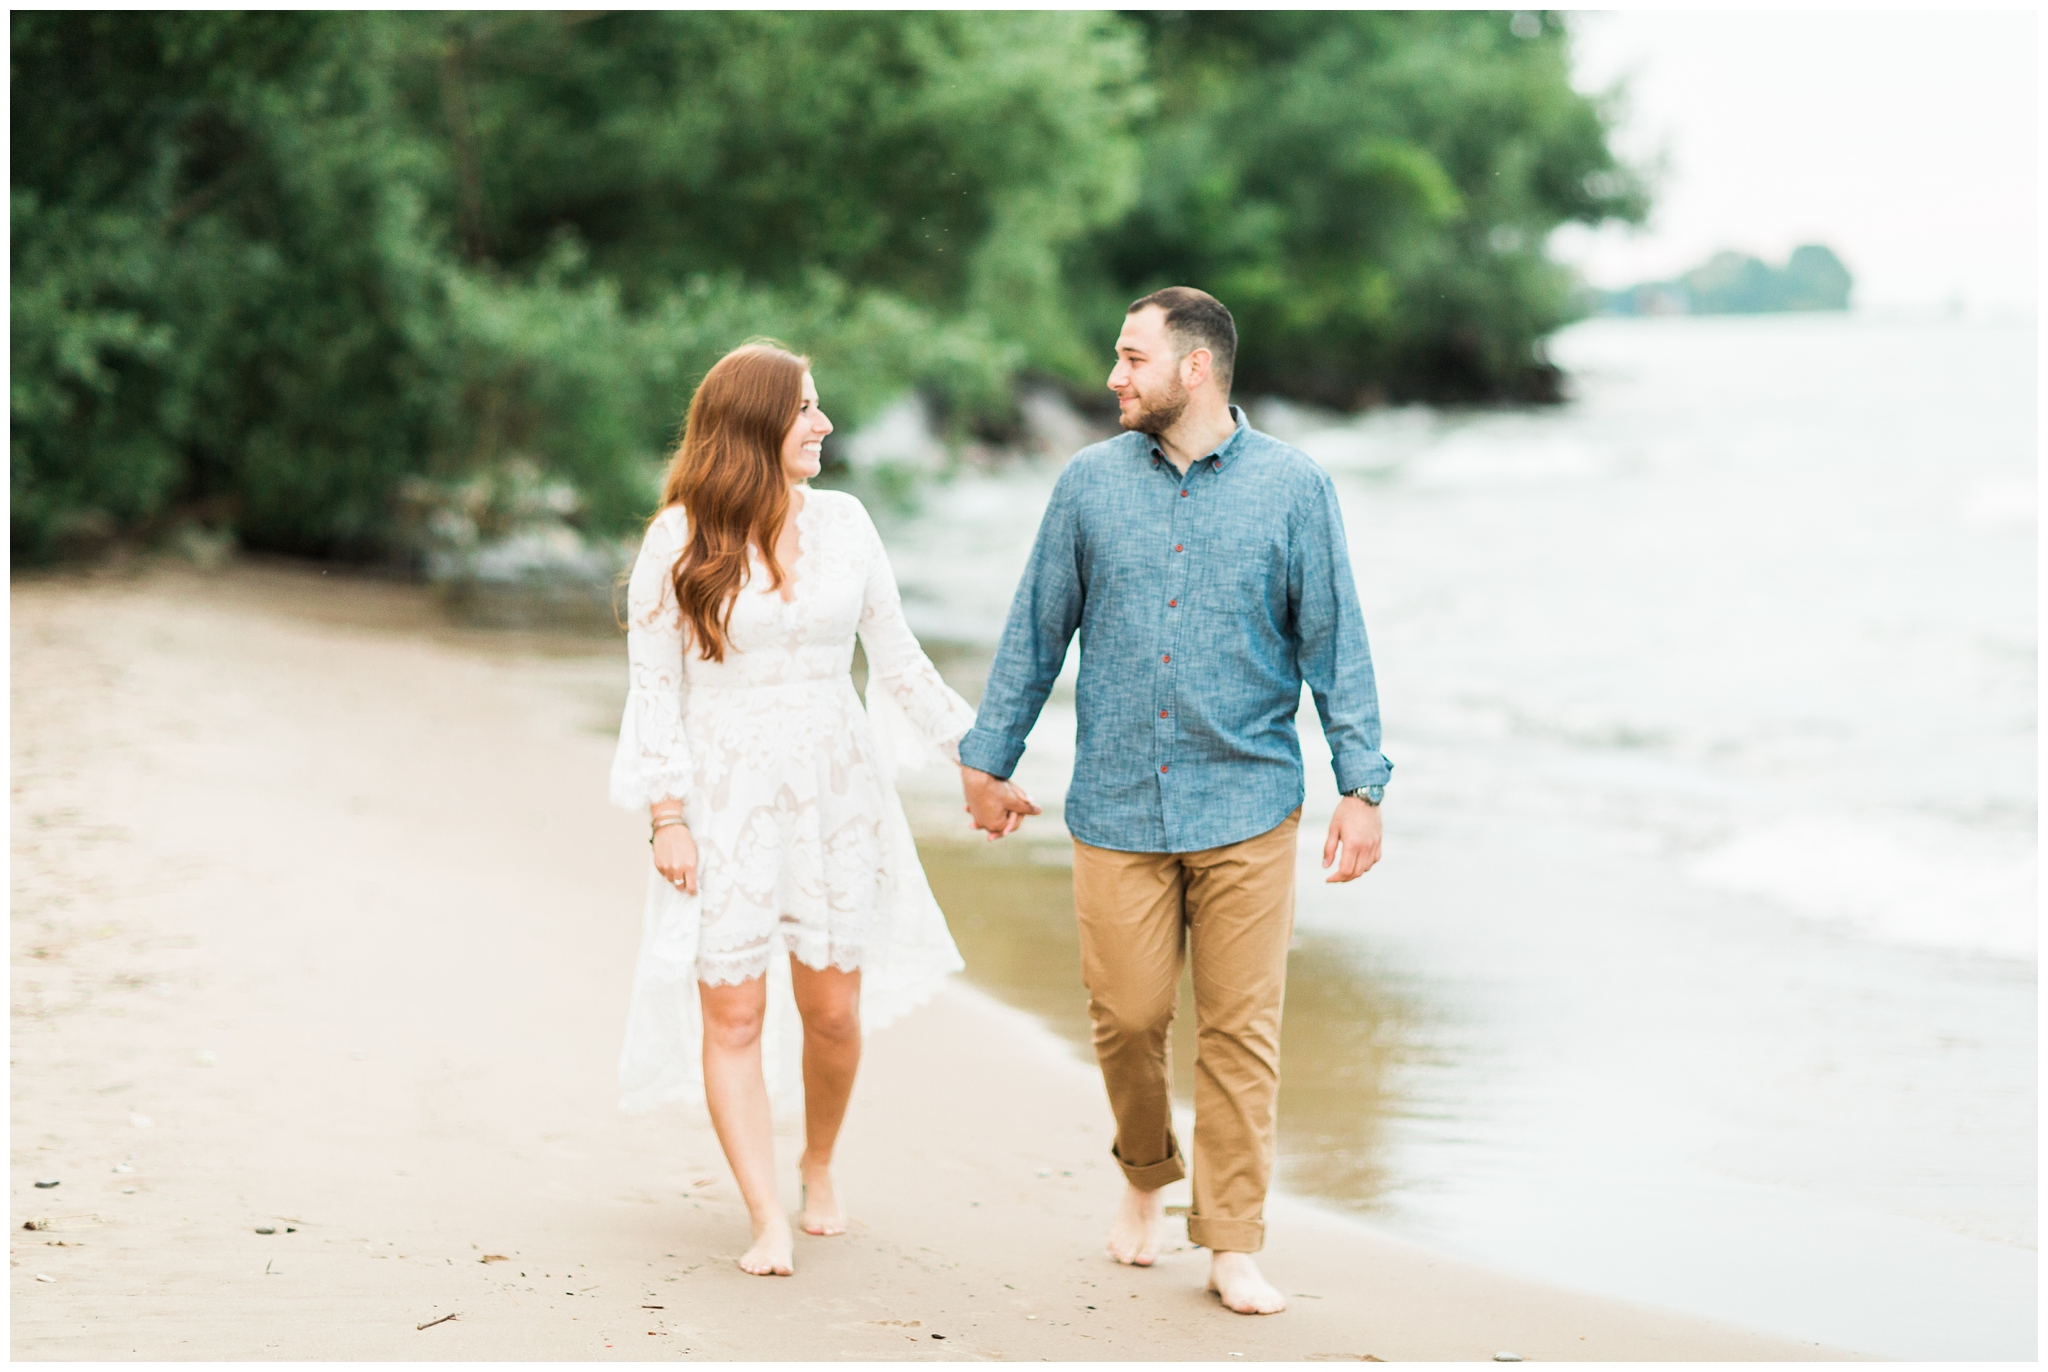 RebeccaHaleyPhotography_chicagoengagementsession_lakemichiganengagementsession_coloradoengagementphotographer_evanstonengagementphotographer_lighthousebeach_lighthousebeachengagementsession_0020.jpg